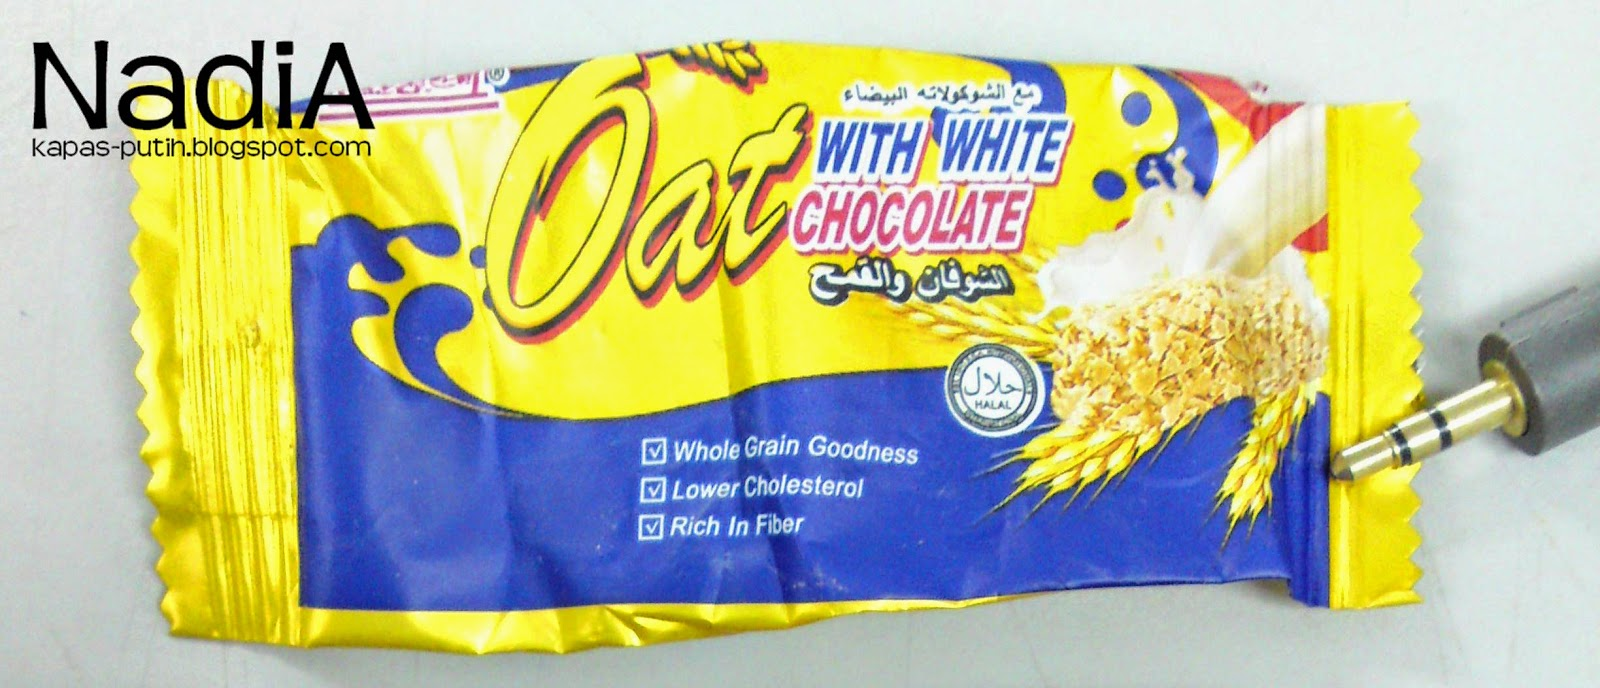 Oat With White Chocolate Penang